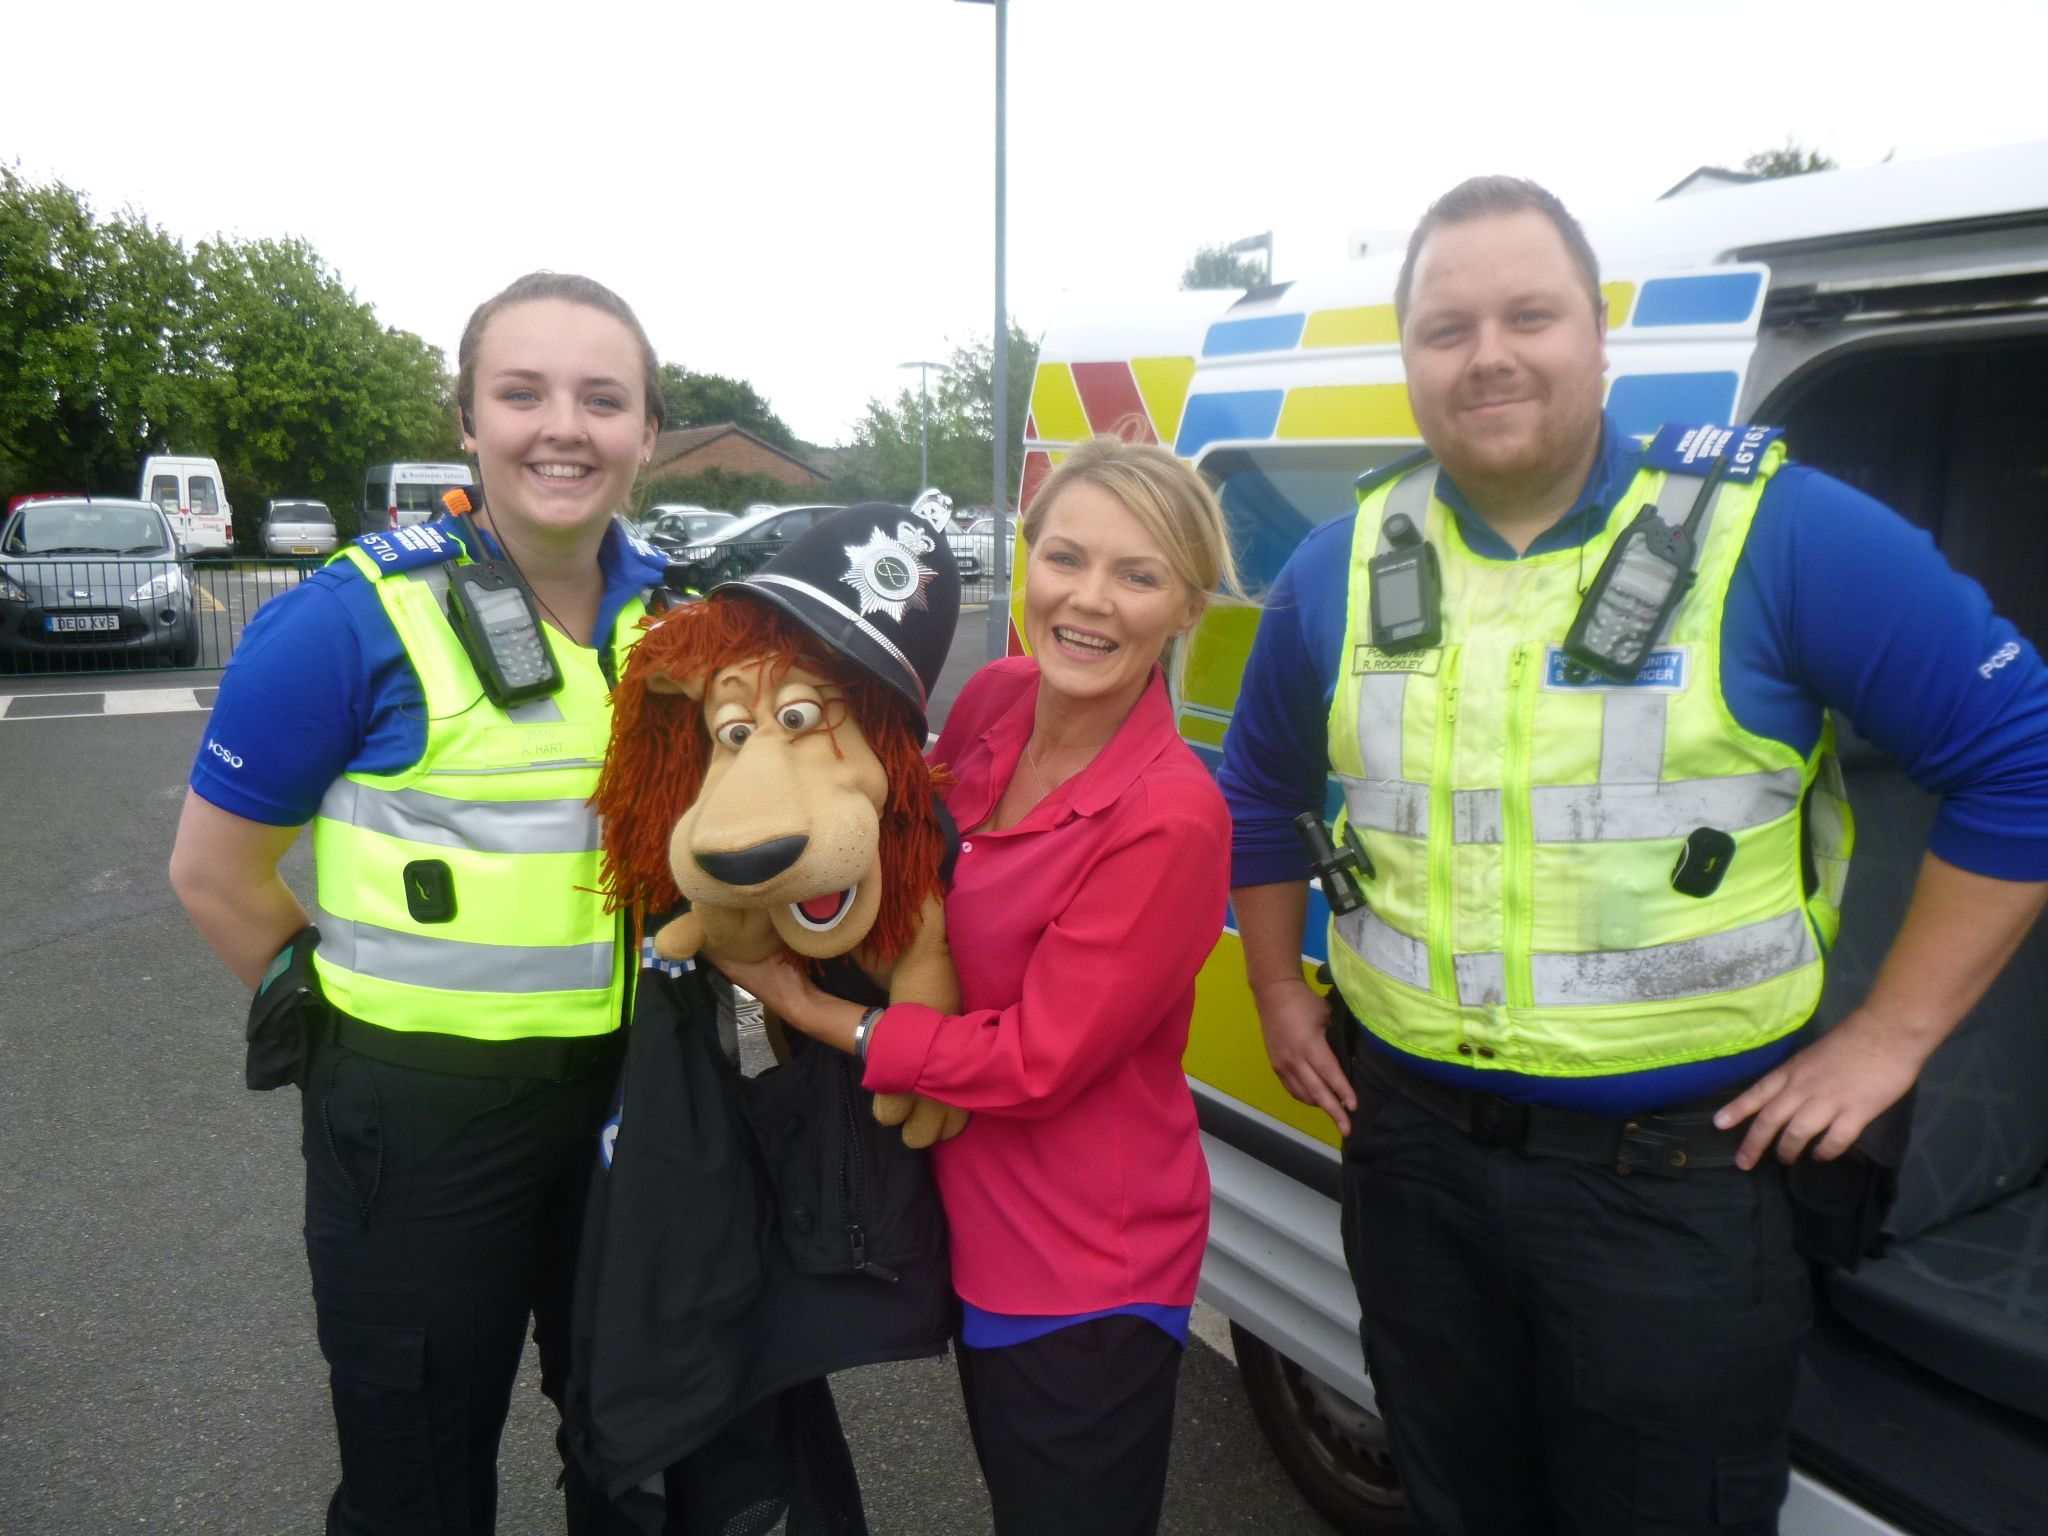 Brain the Lion tries on a police hat and jacket for size